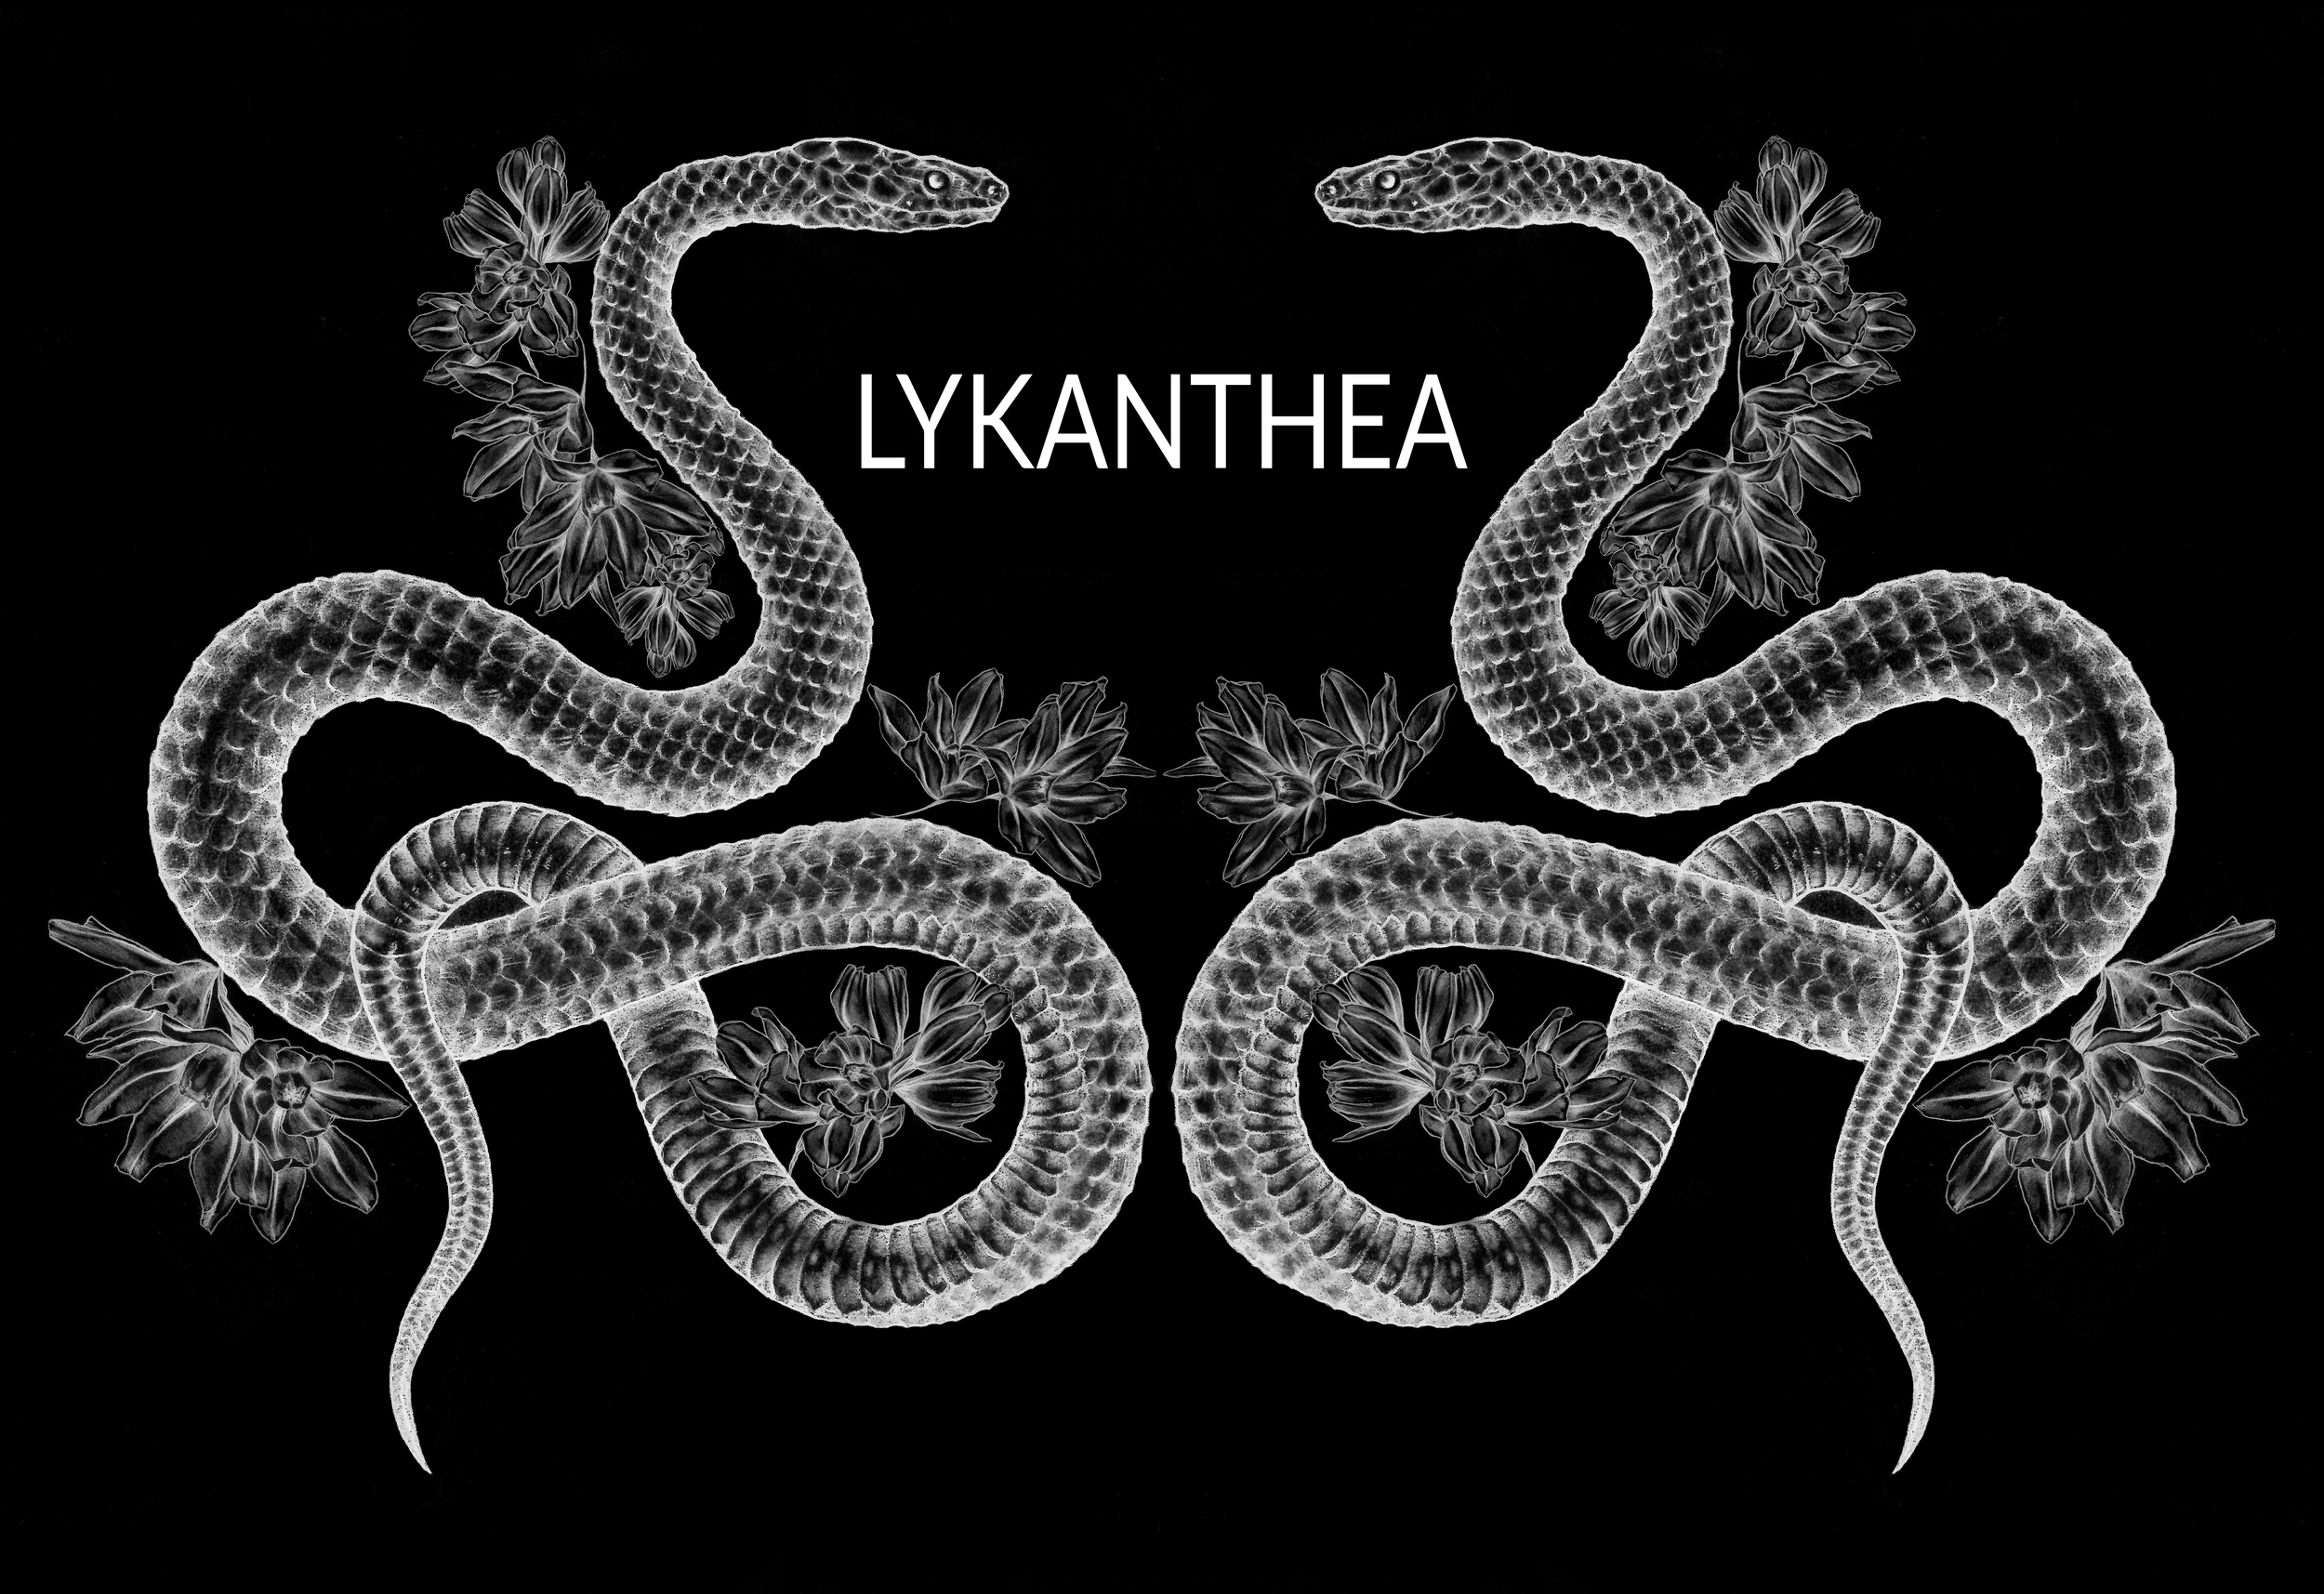 lykanthea title inverted.jpg